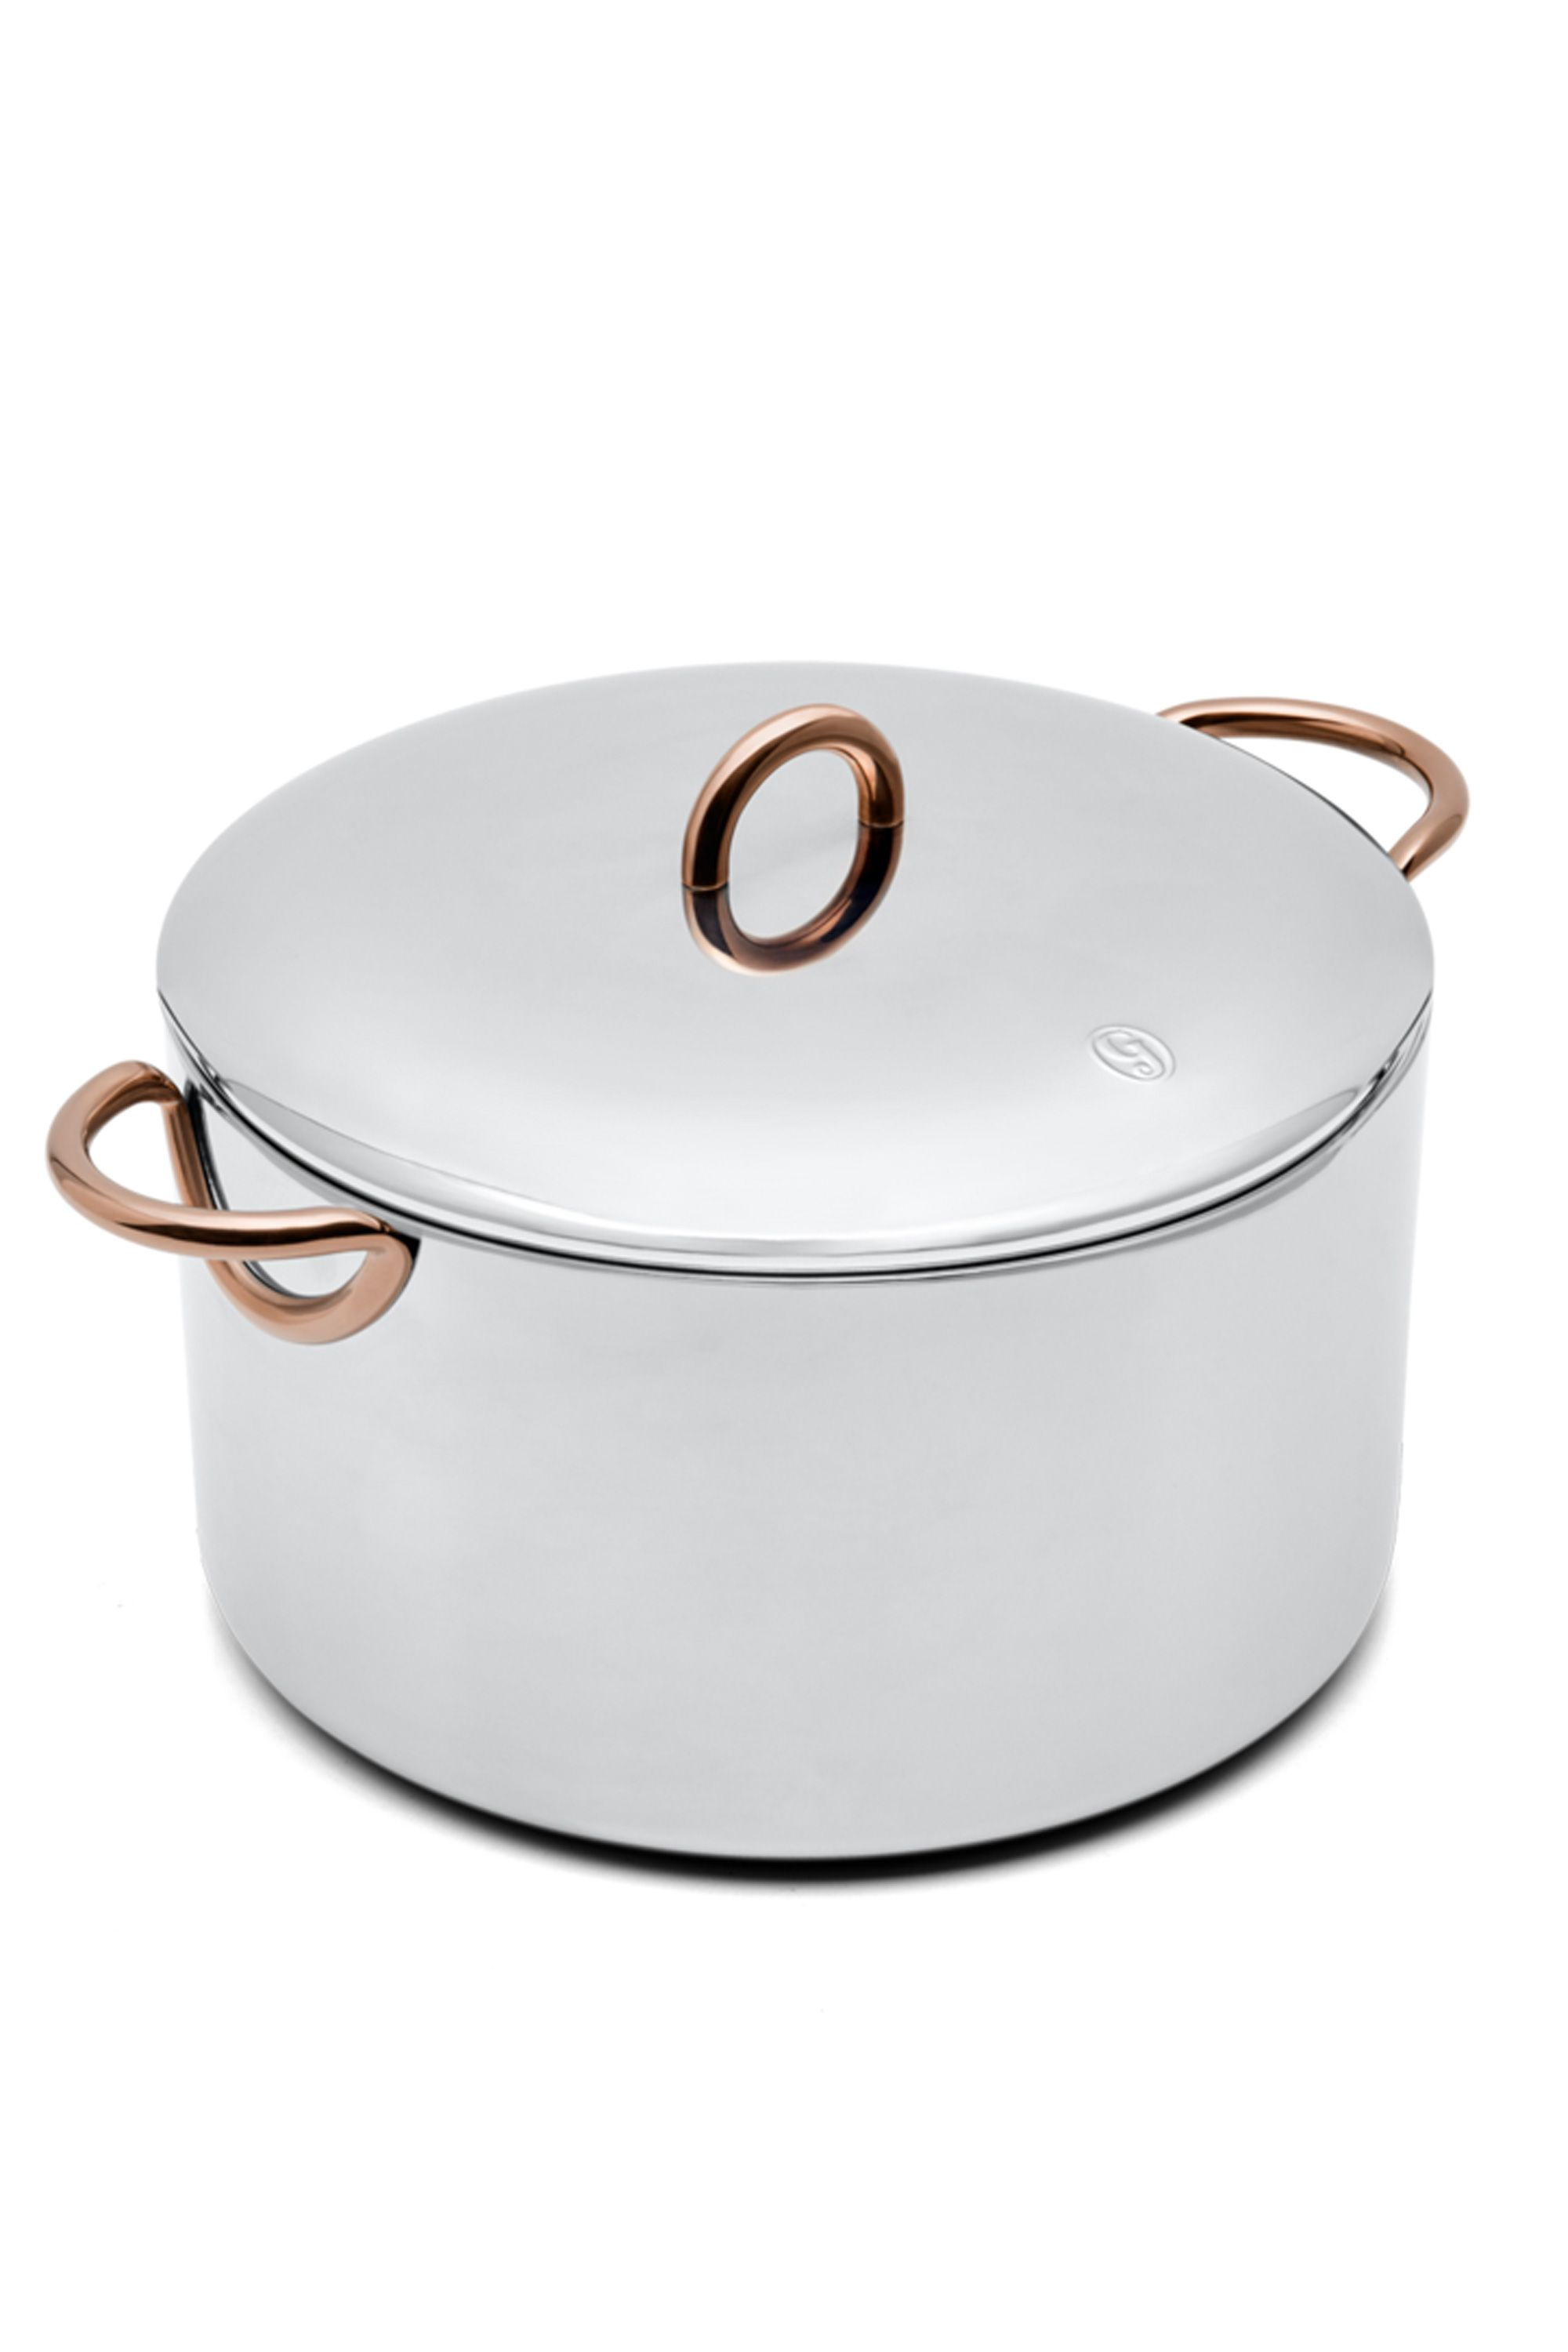 Family Style Stockpot Great Jones is the new Le Creuset.